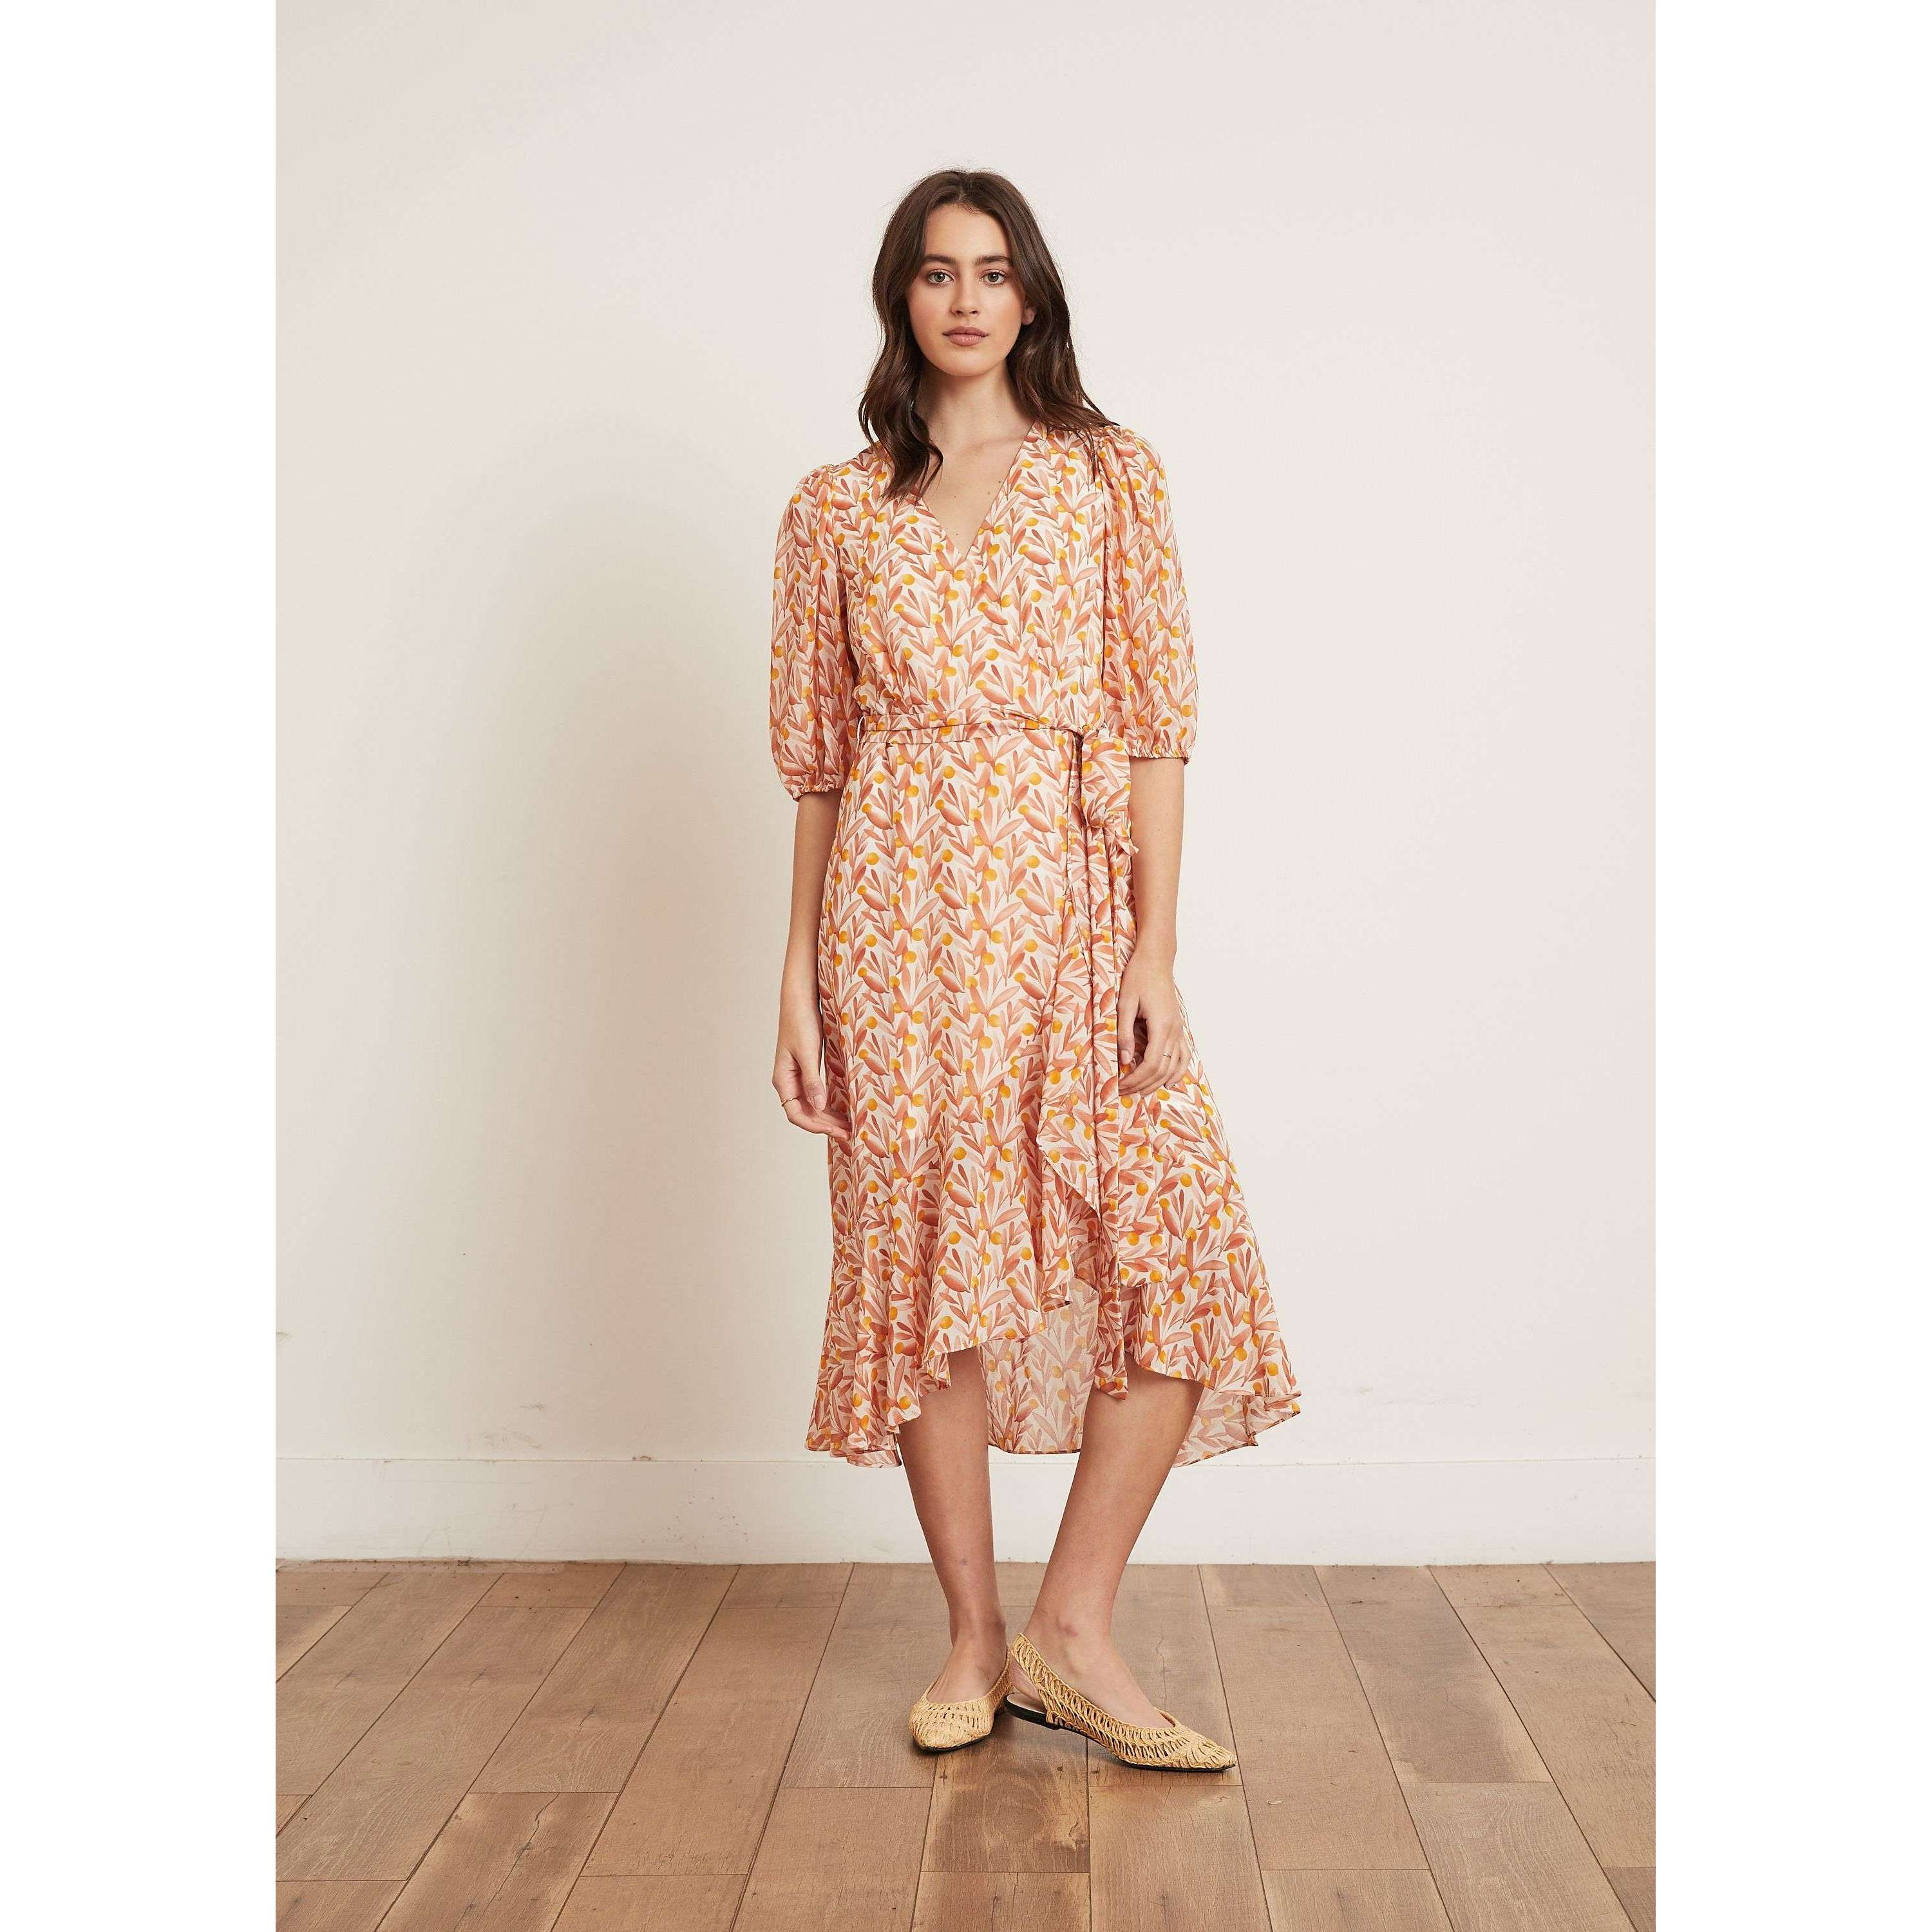 8.28 Boutique:LUCY PARIS,Lucy Paris Claira Orange Floral Dress,Dress